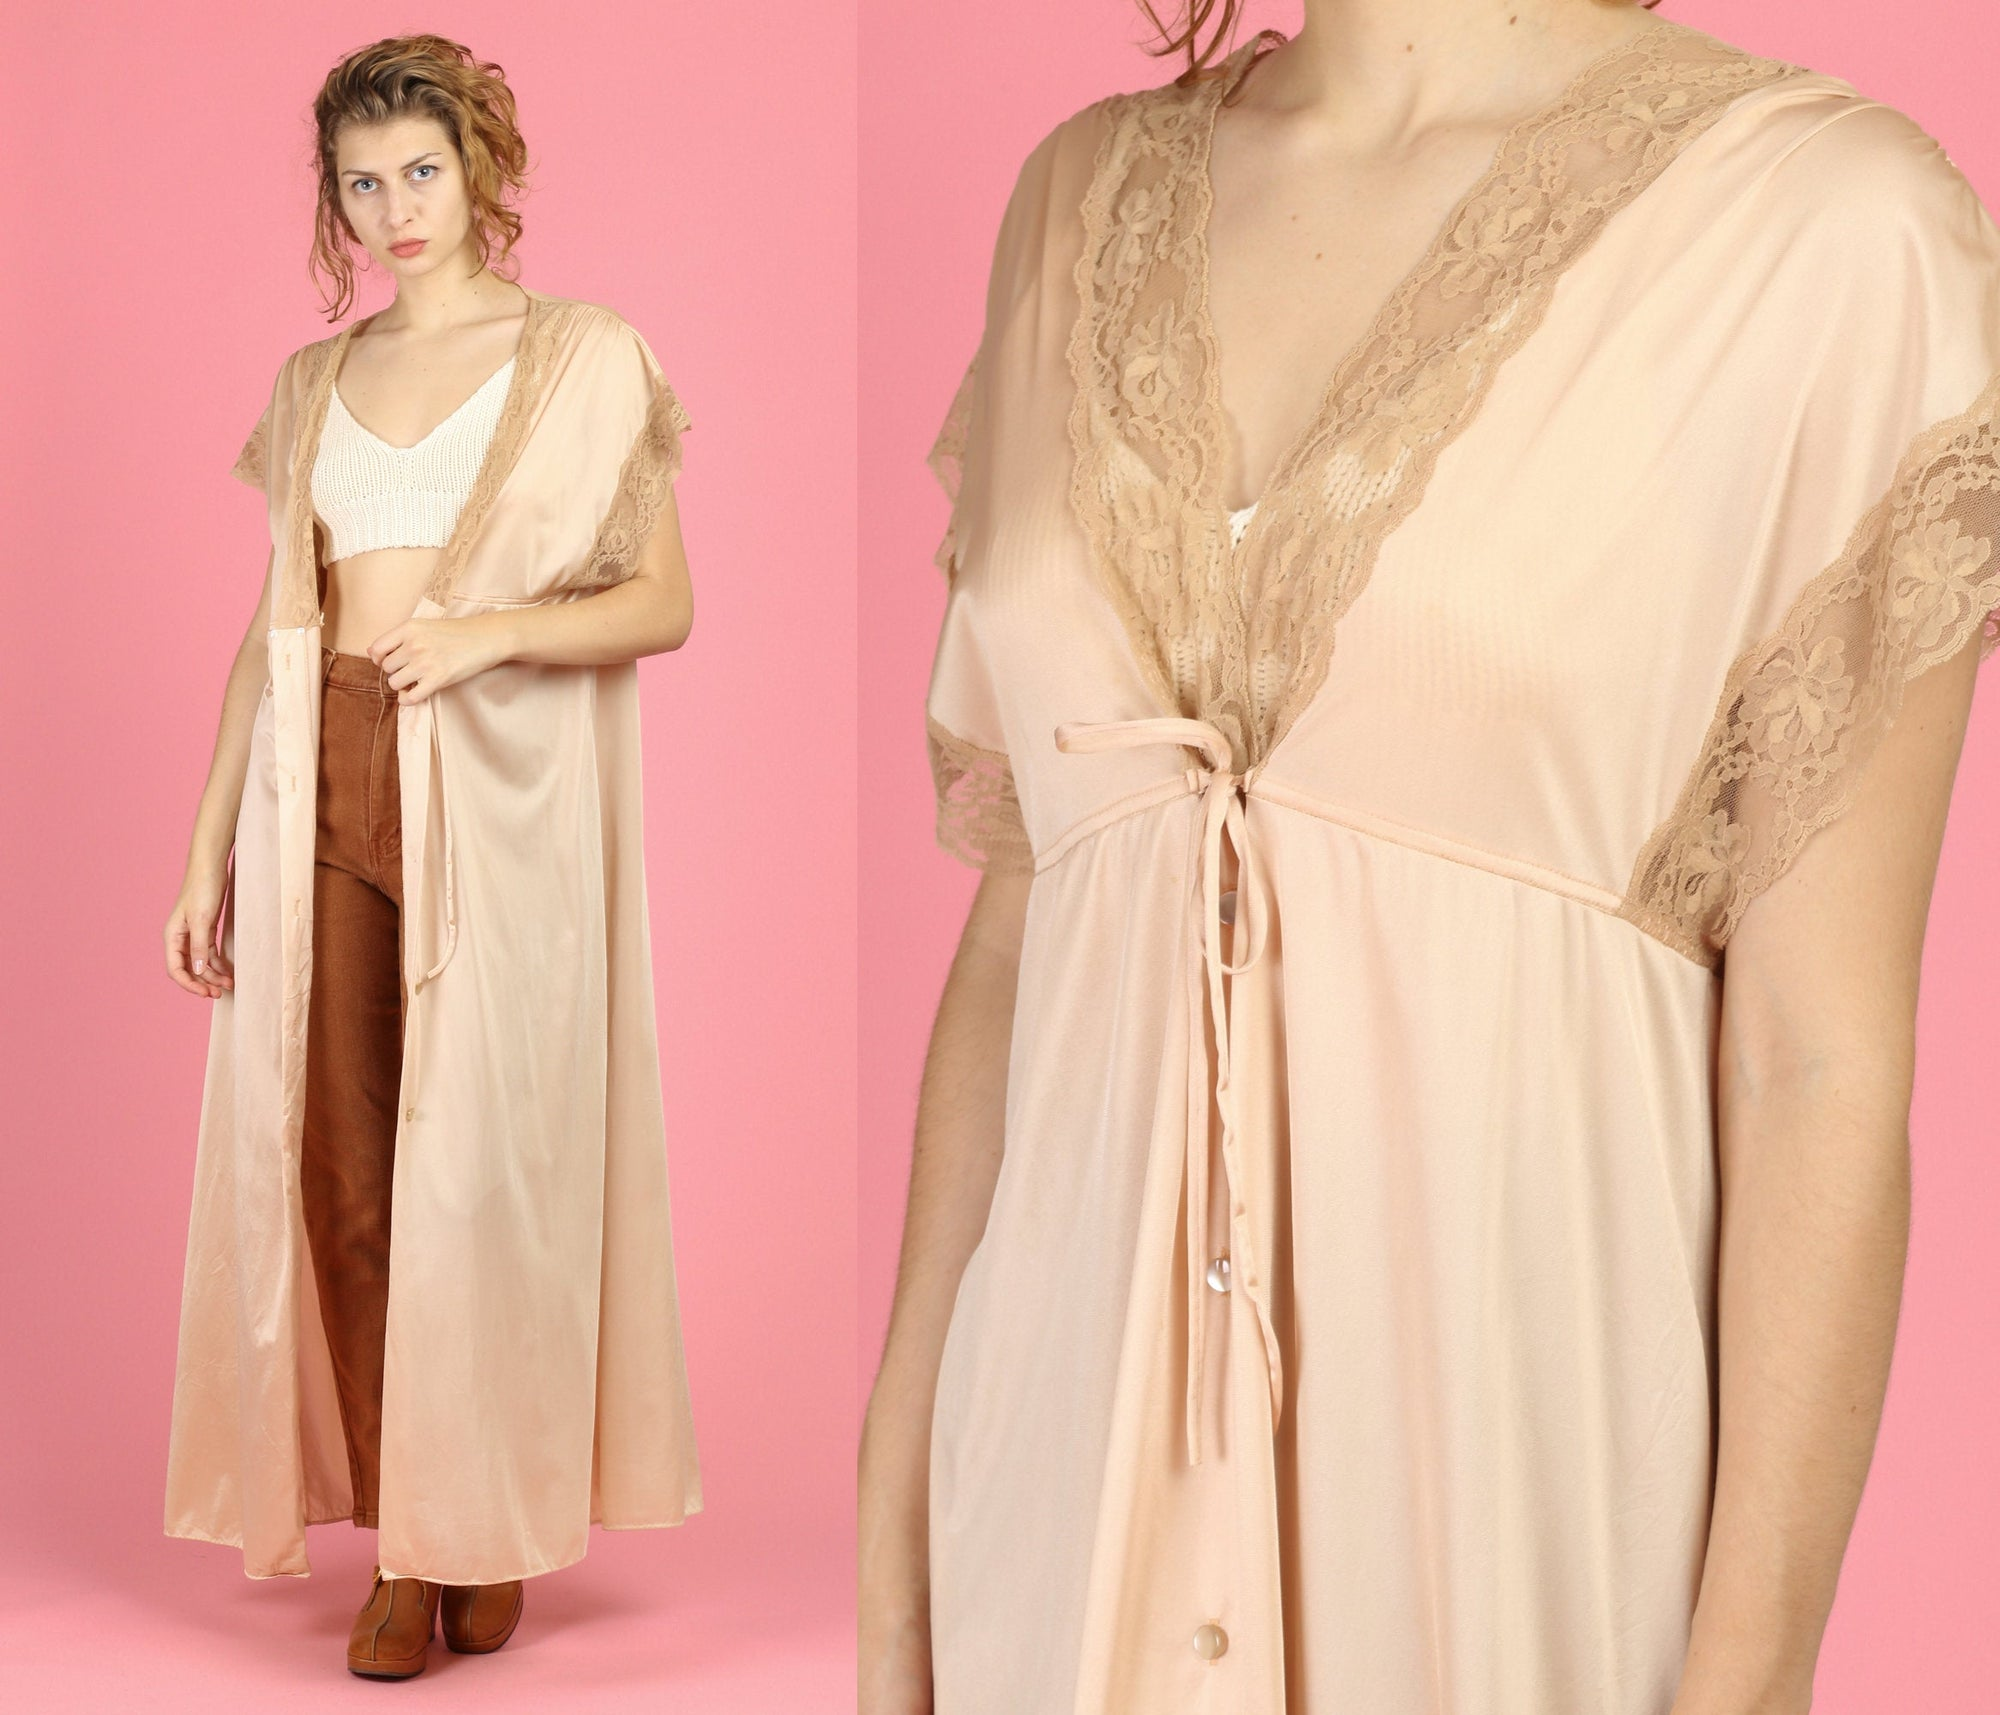 70s Saks Fifth Avenue Peignoir - Small to Large